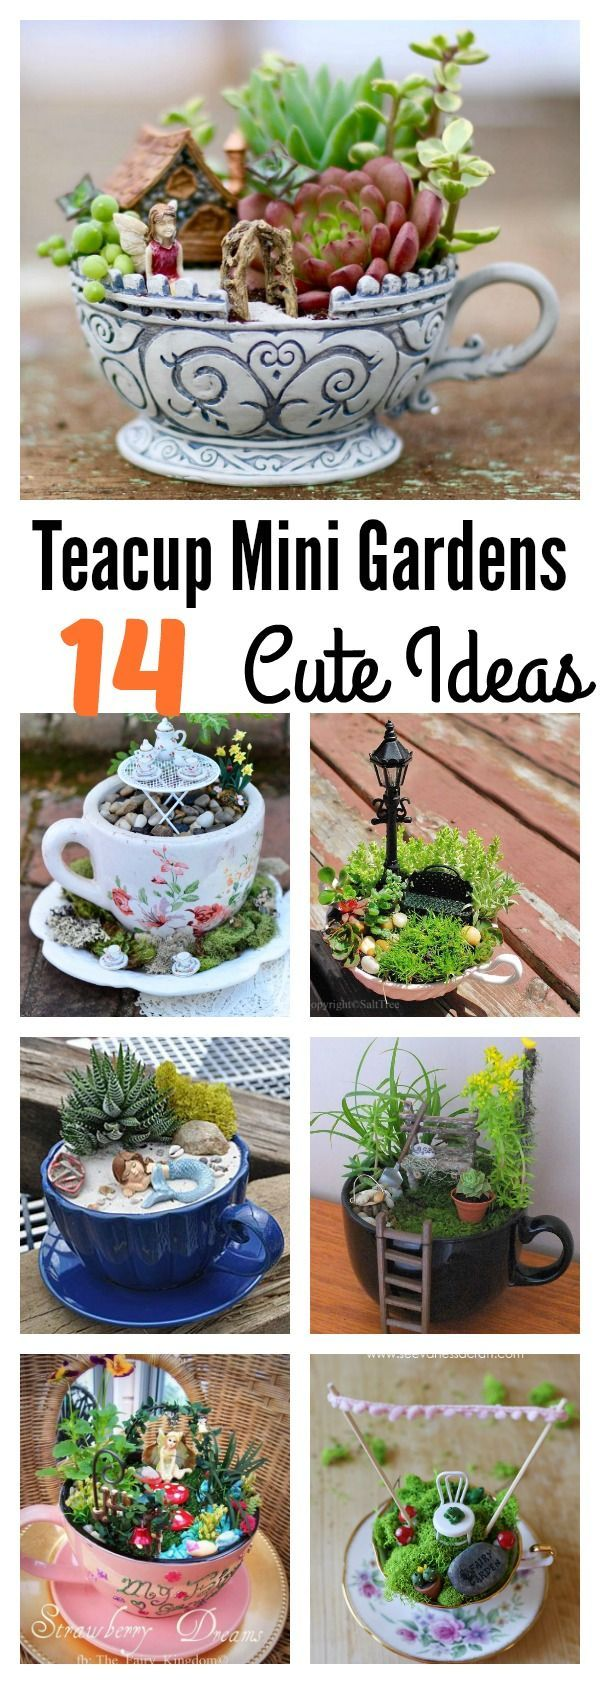 14 cute teacup mini gardens ideas